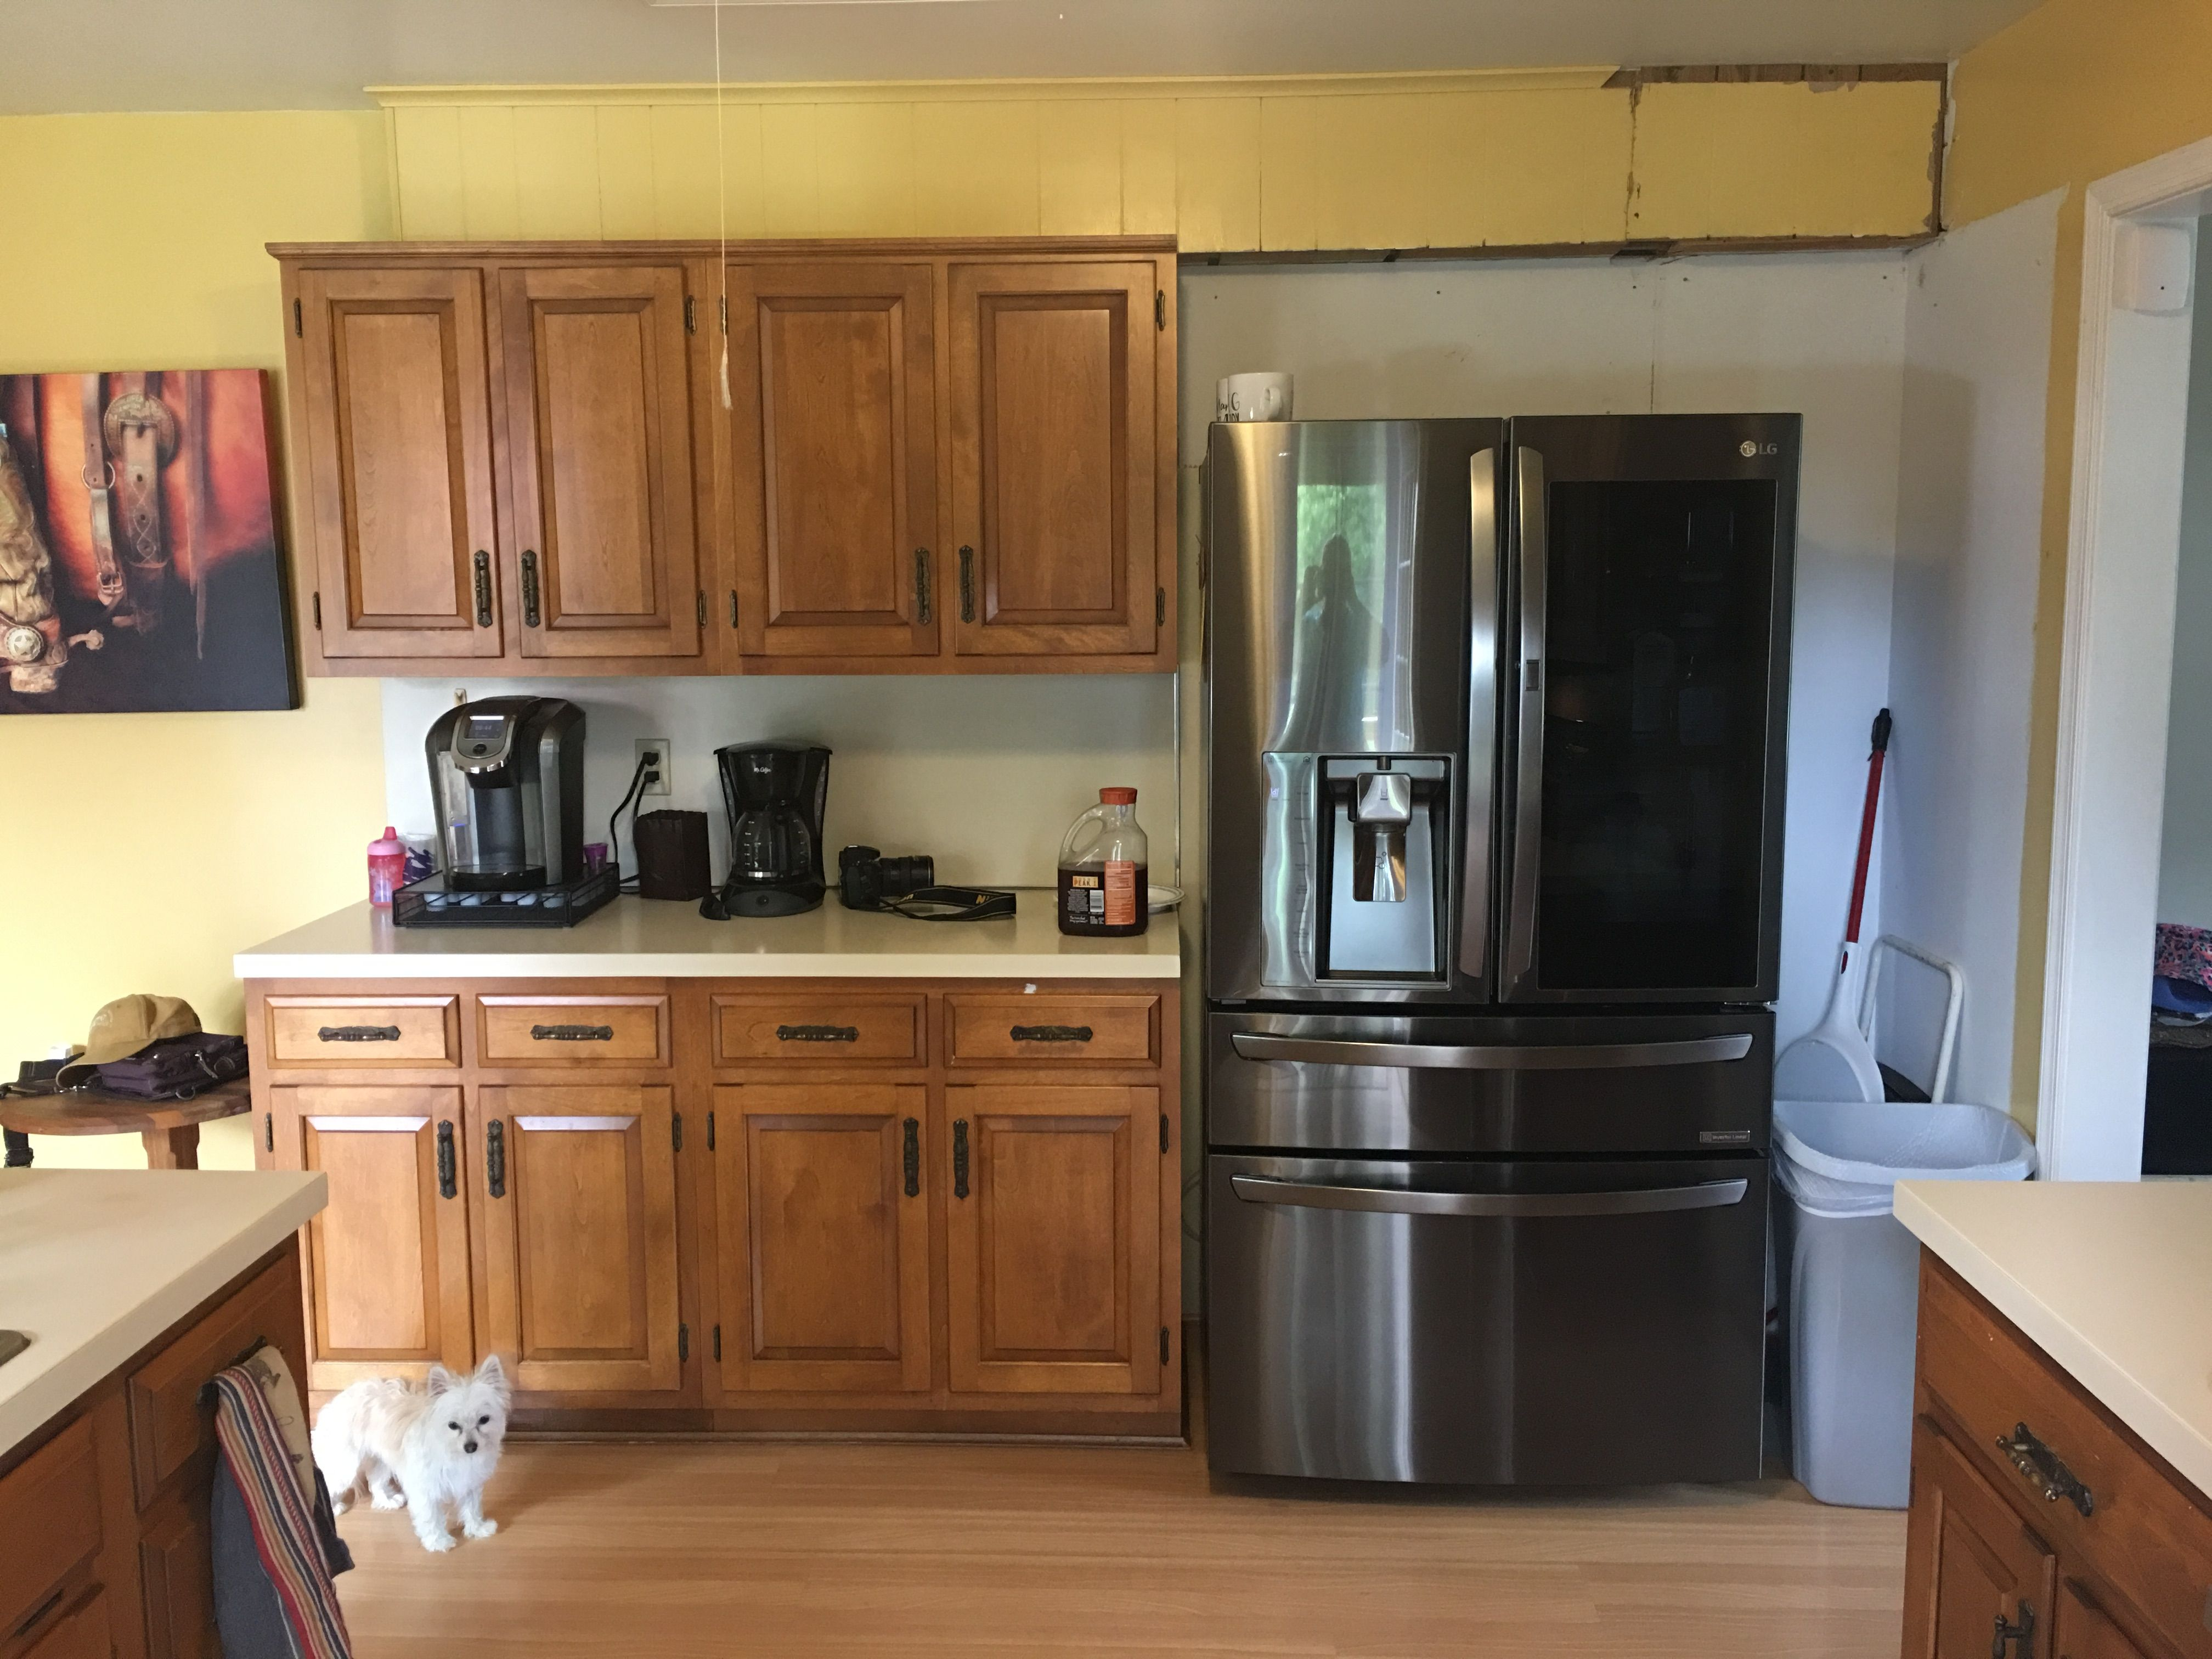 Pin By Choice Construction Services On Farm House Influenced Kitchen Remodel Kitchen Remodel Kitchen Countertops